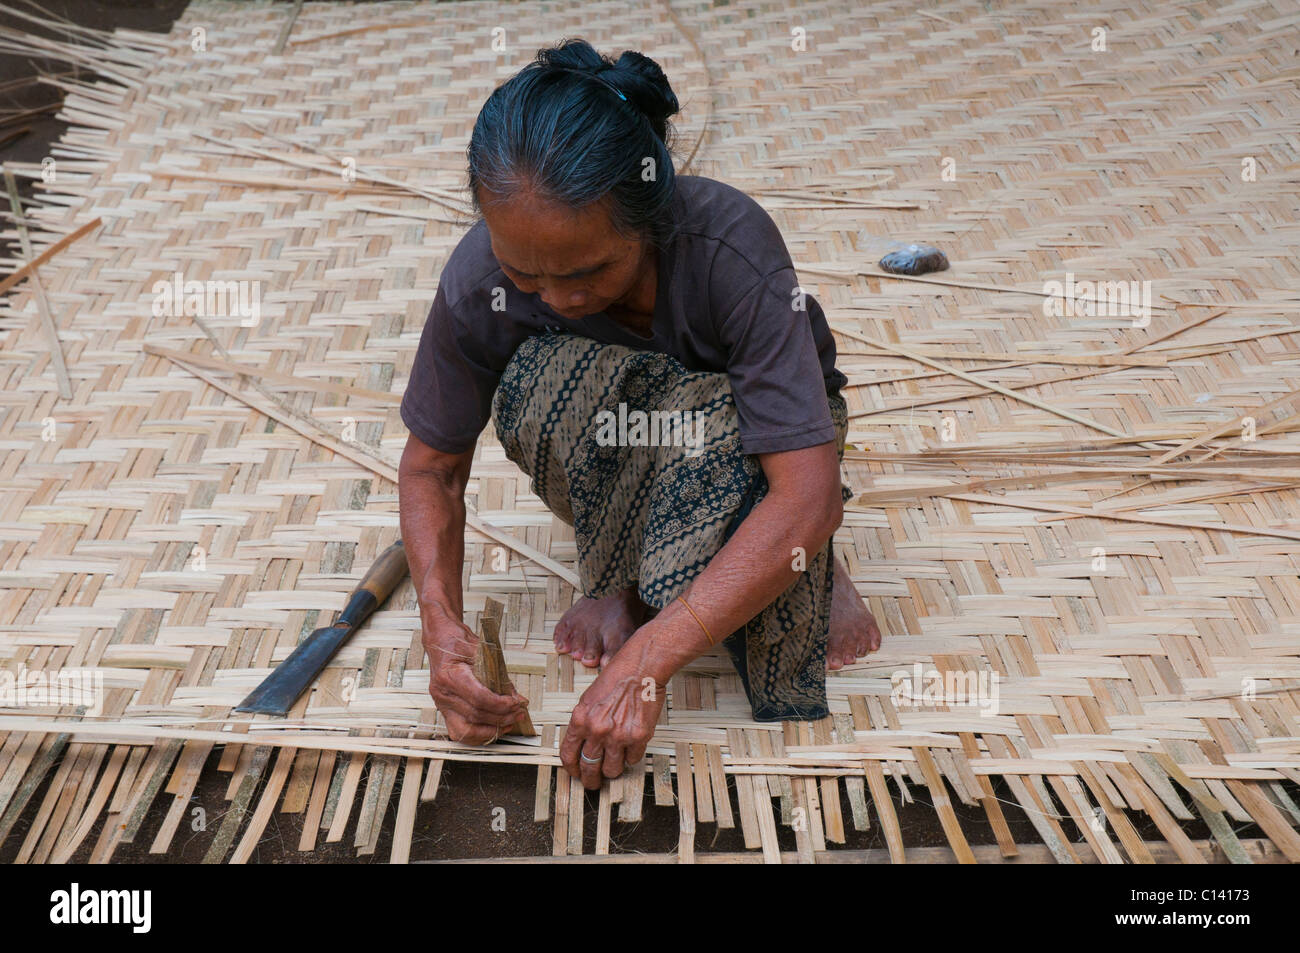 Woman weaving split bamboo into traditional panels for lining the walls and ceiling of traditional Balinese houses - Stock Image